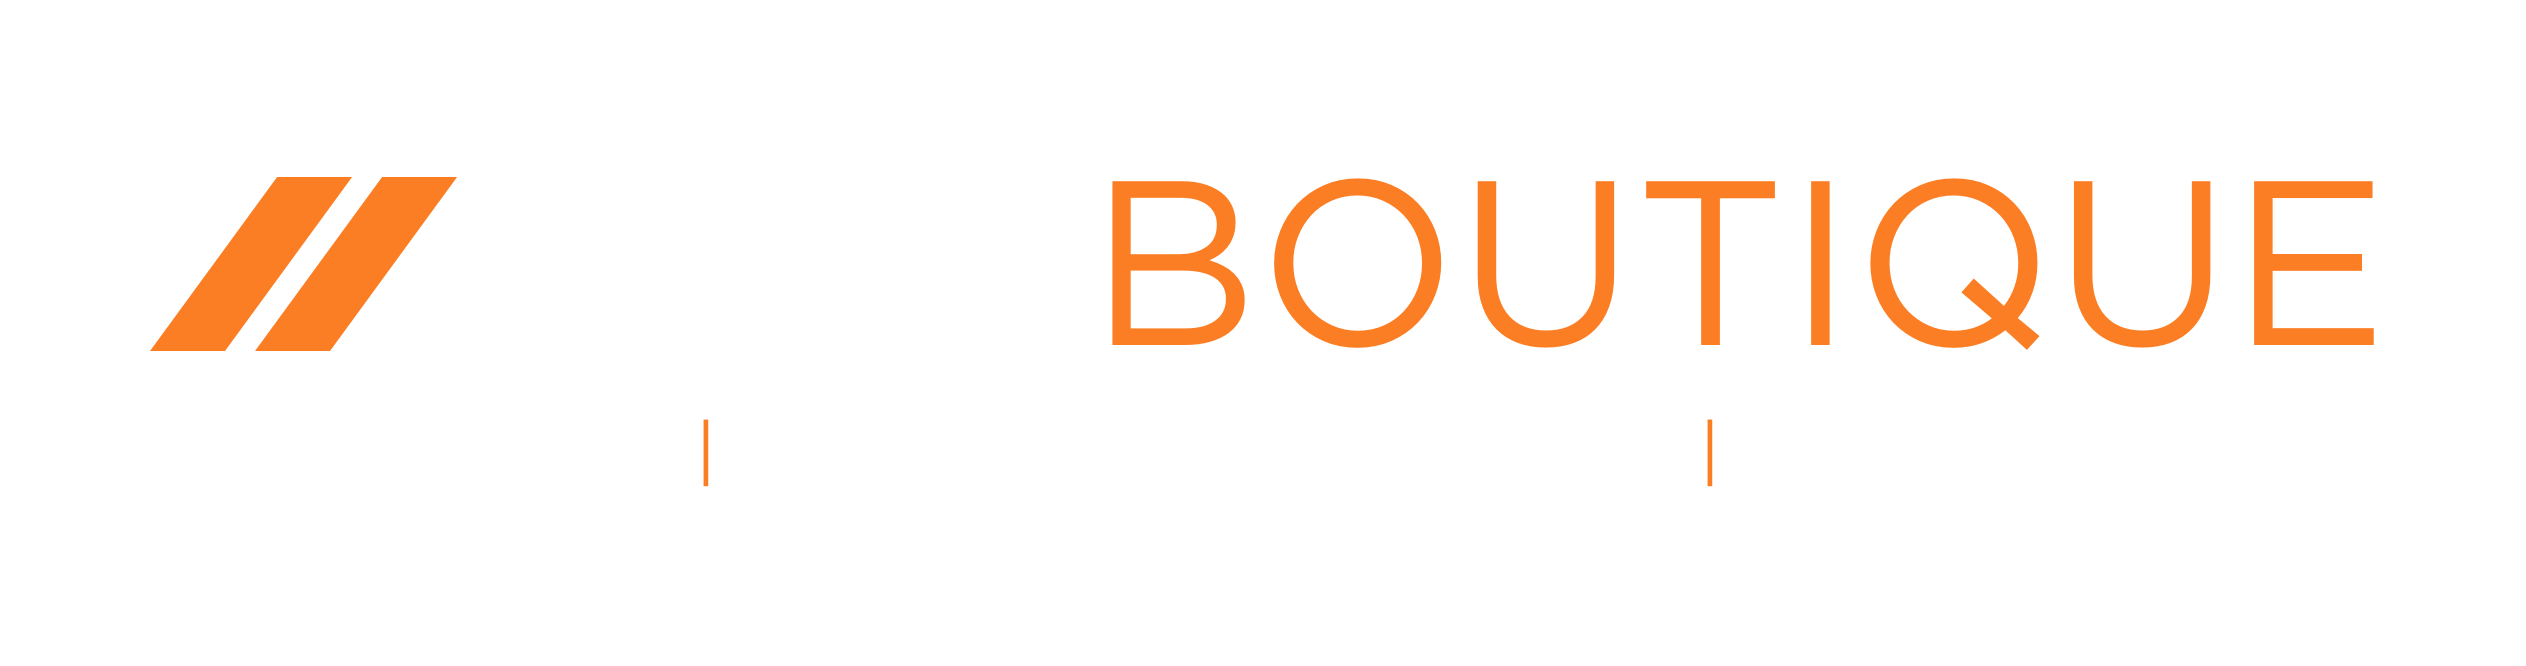 Auto Boutique logo